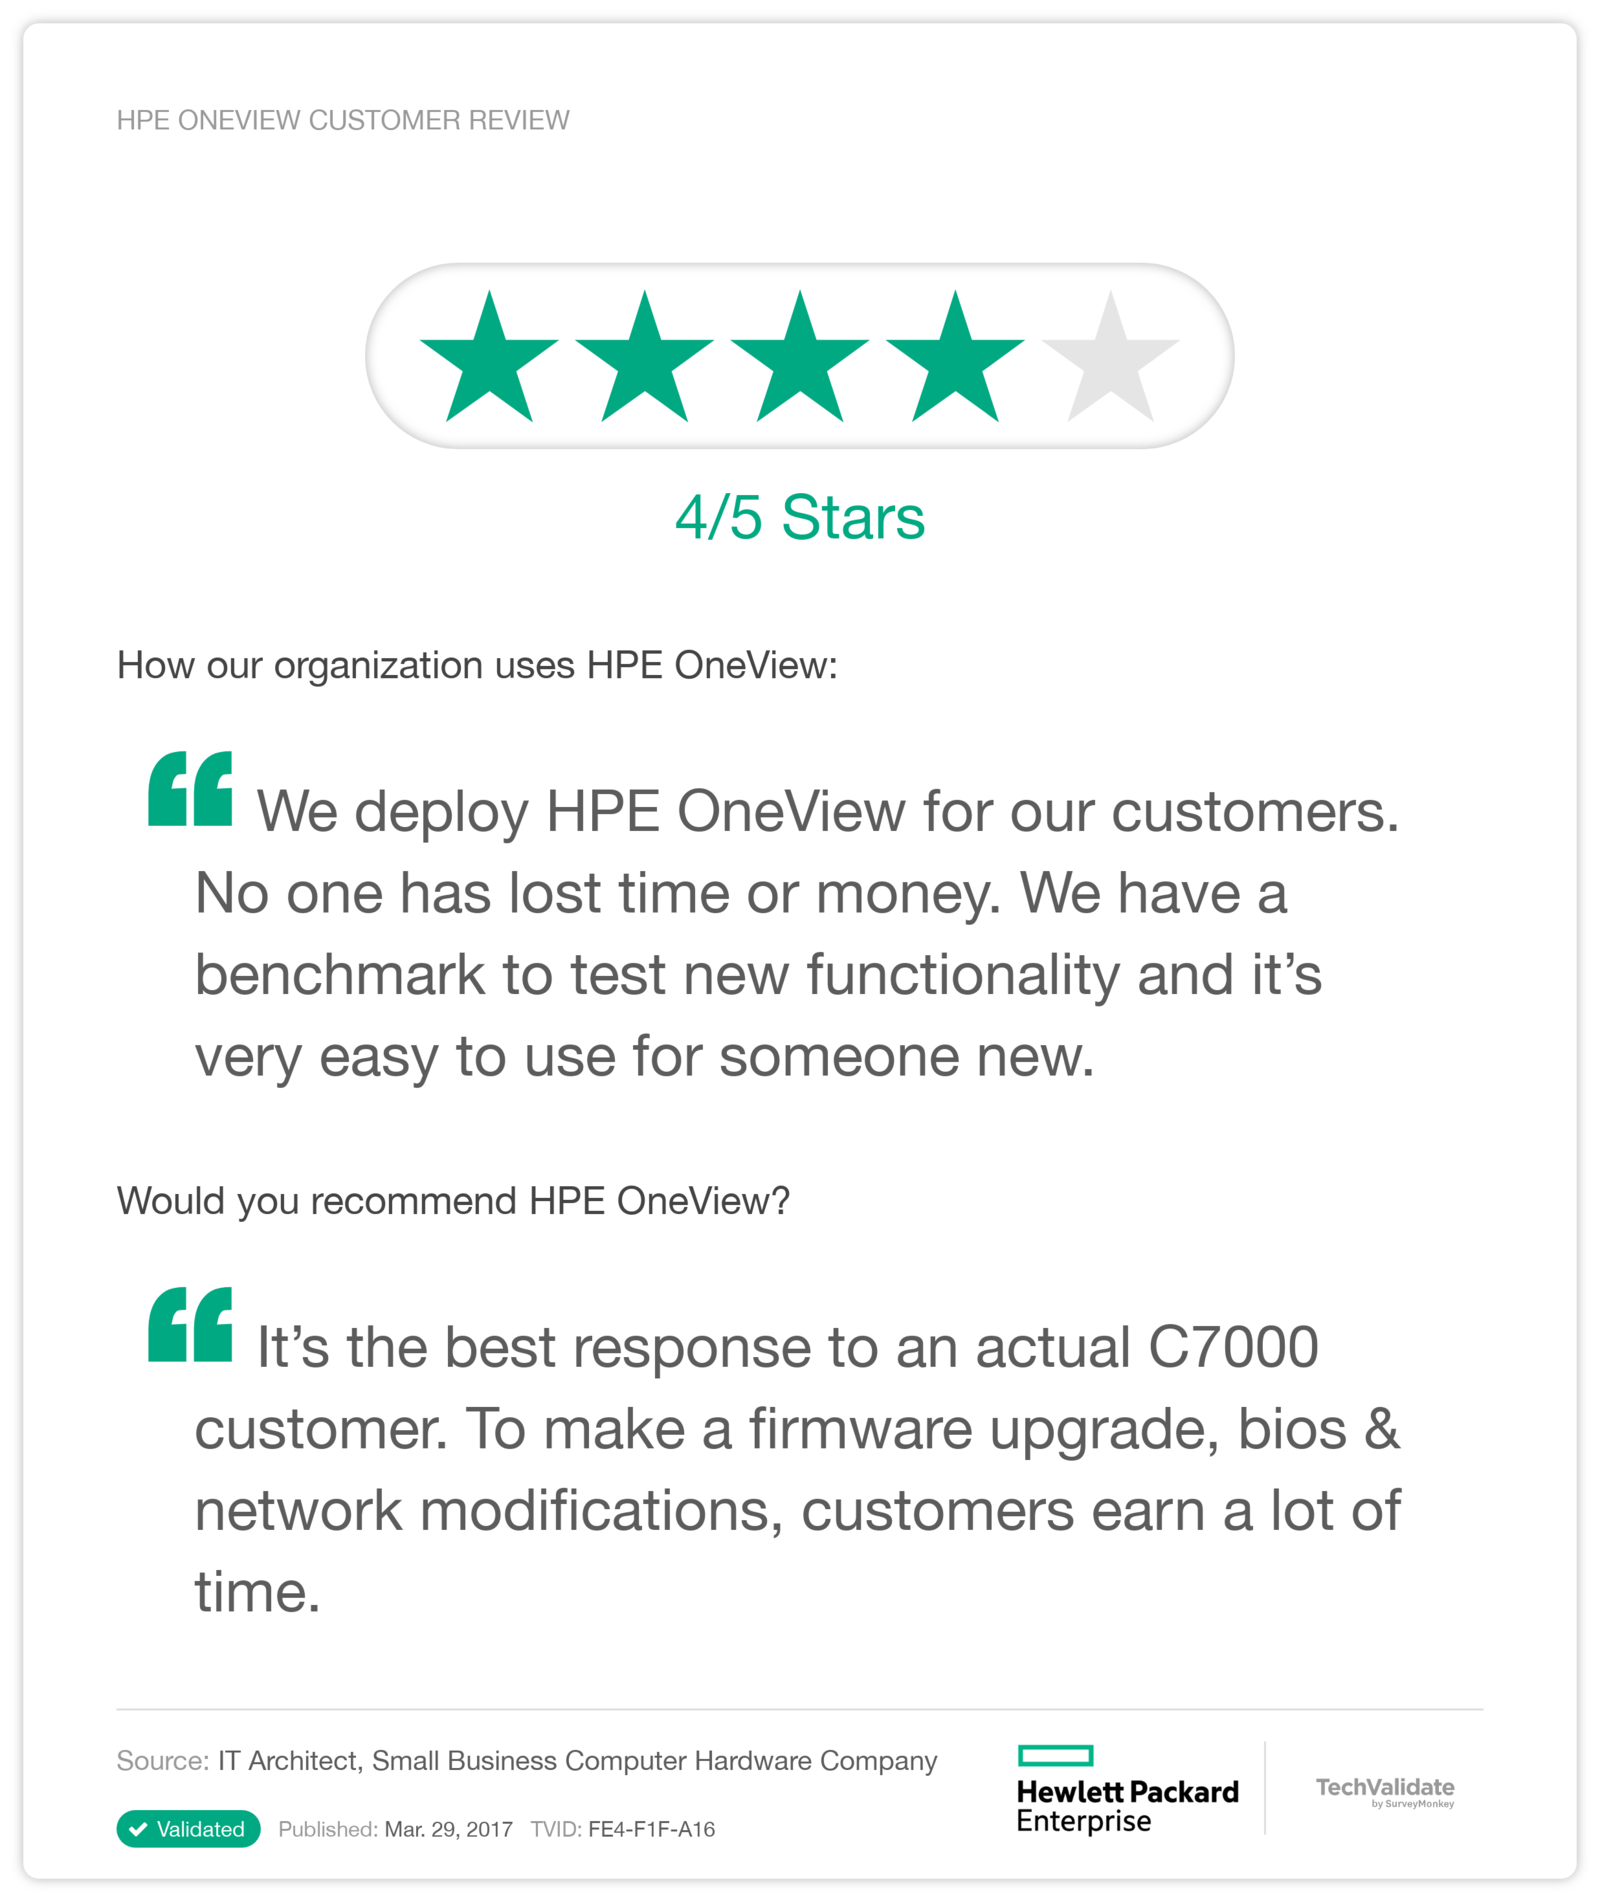 HPE OneView Customer Review